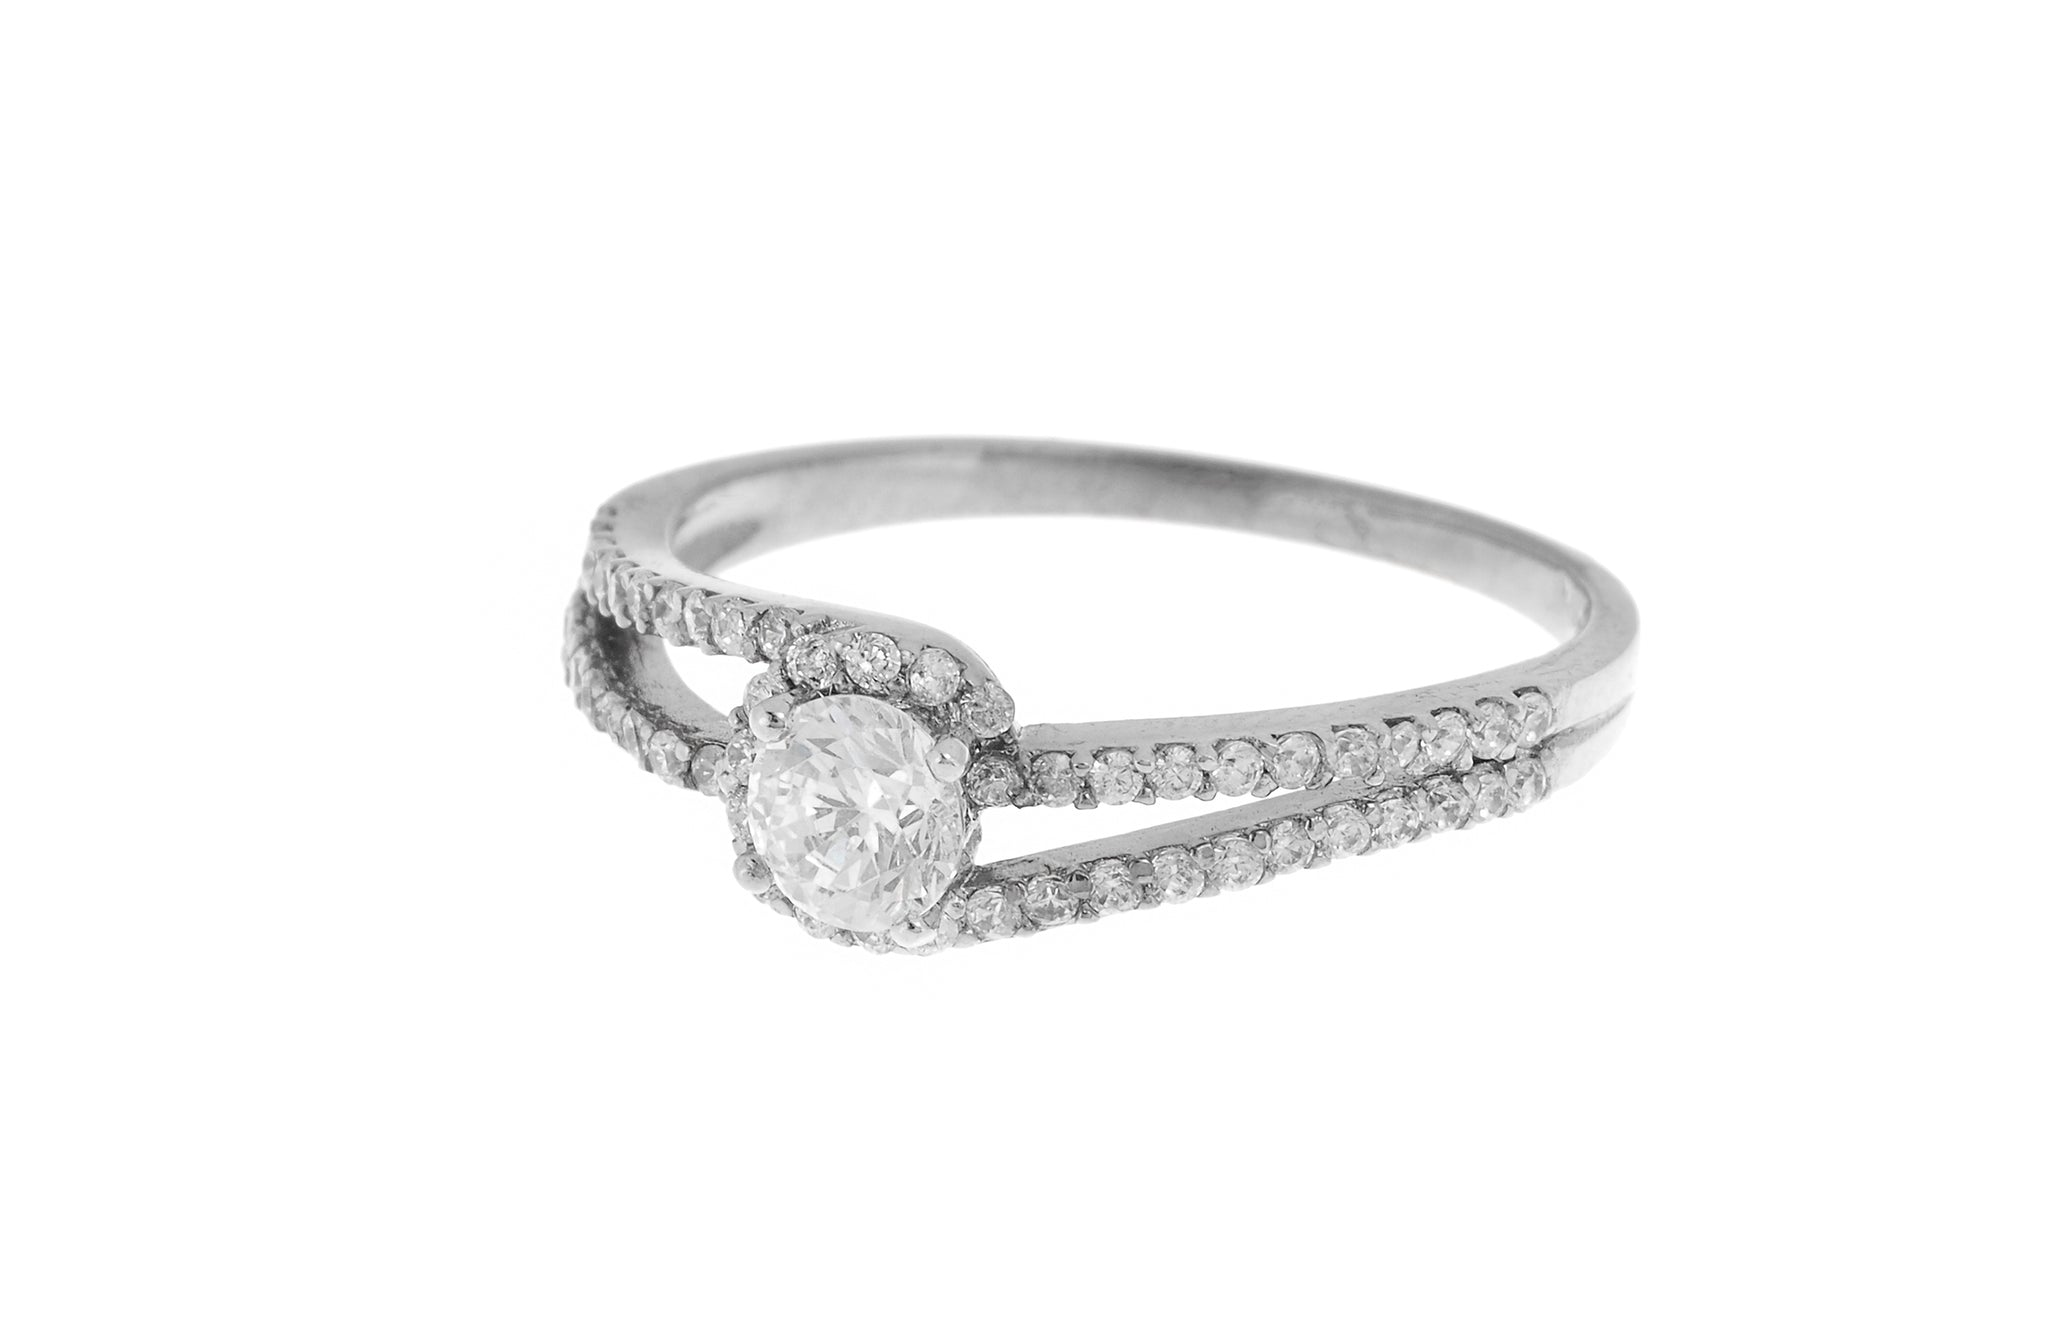 18ct White / Yellow Gold Cubic Zirconia Engagement Ring (LR-3842)